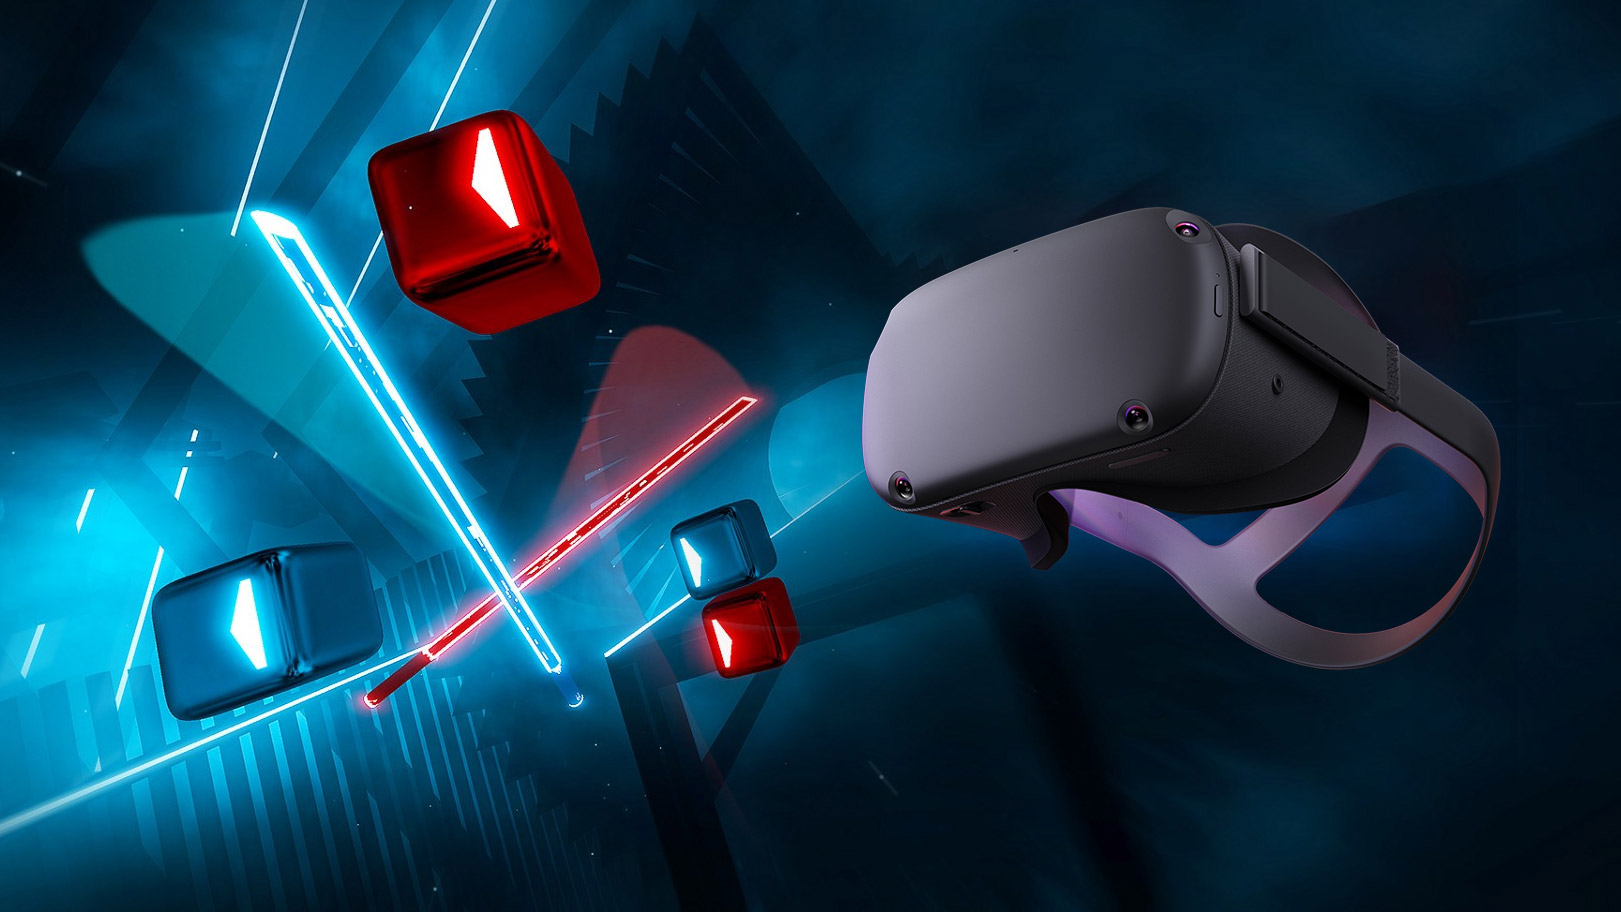 This Modder Brought Custom Tracks to 'Beat Saber' on Oculus Quest